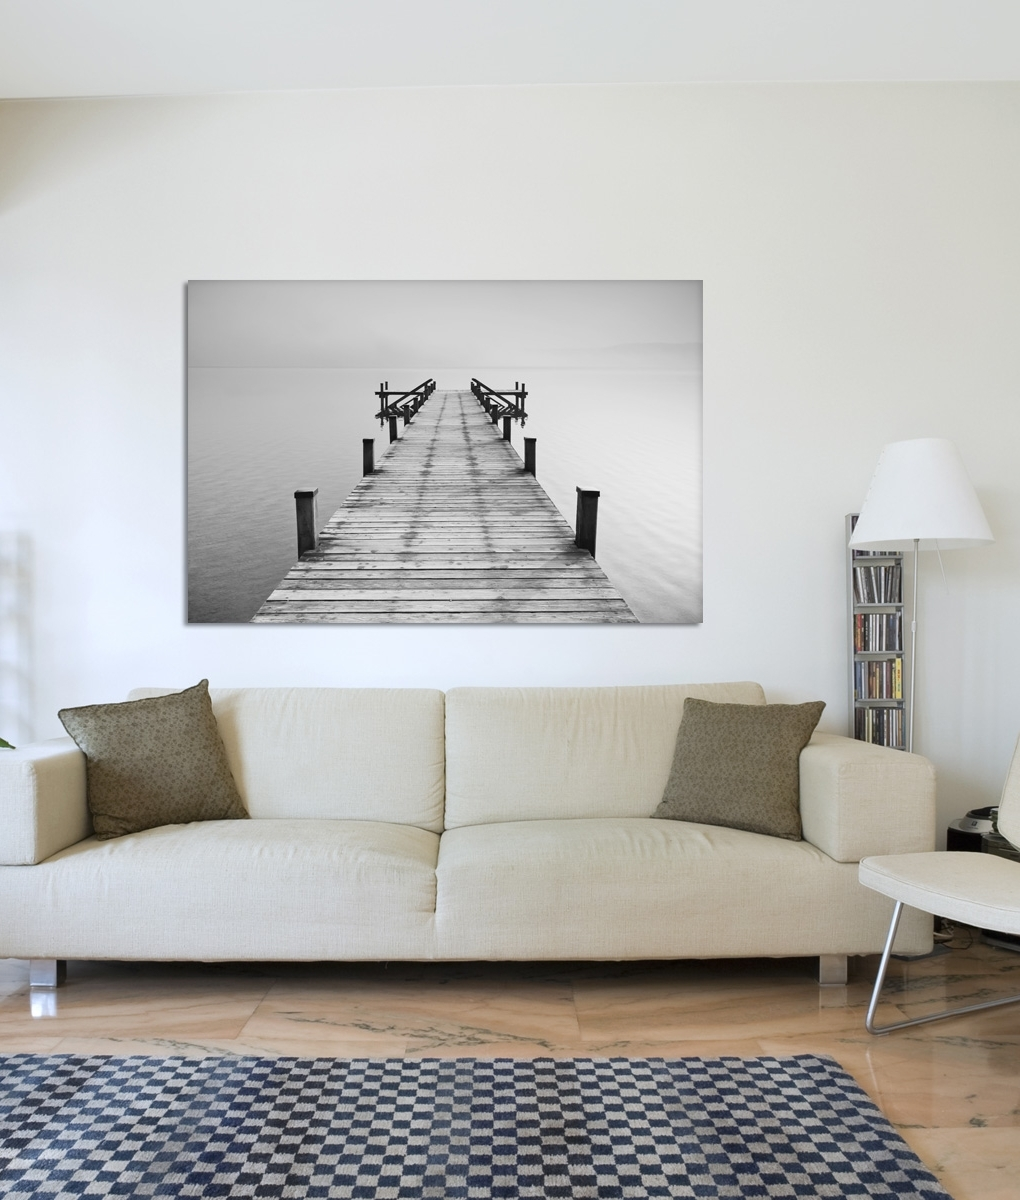 Fashionable Jetty Canvas Wall Art Intended For B&w Jetty Canvas Print (View 4 of 15)